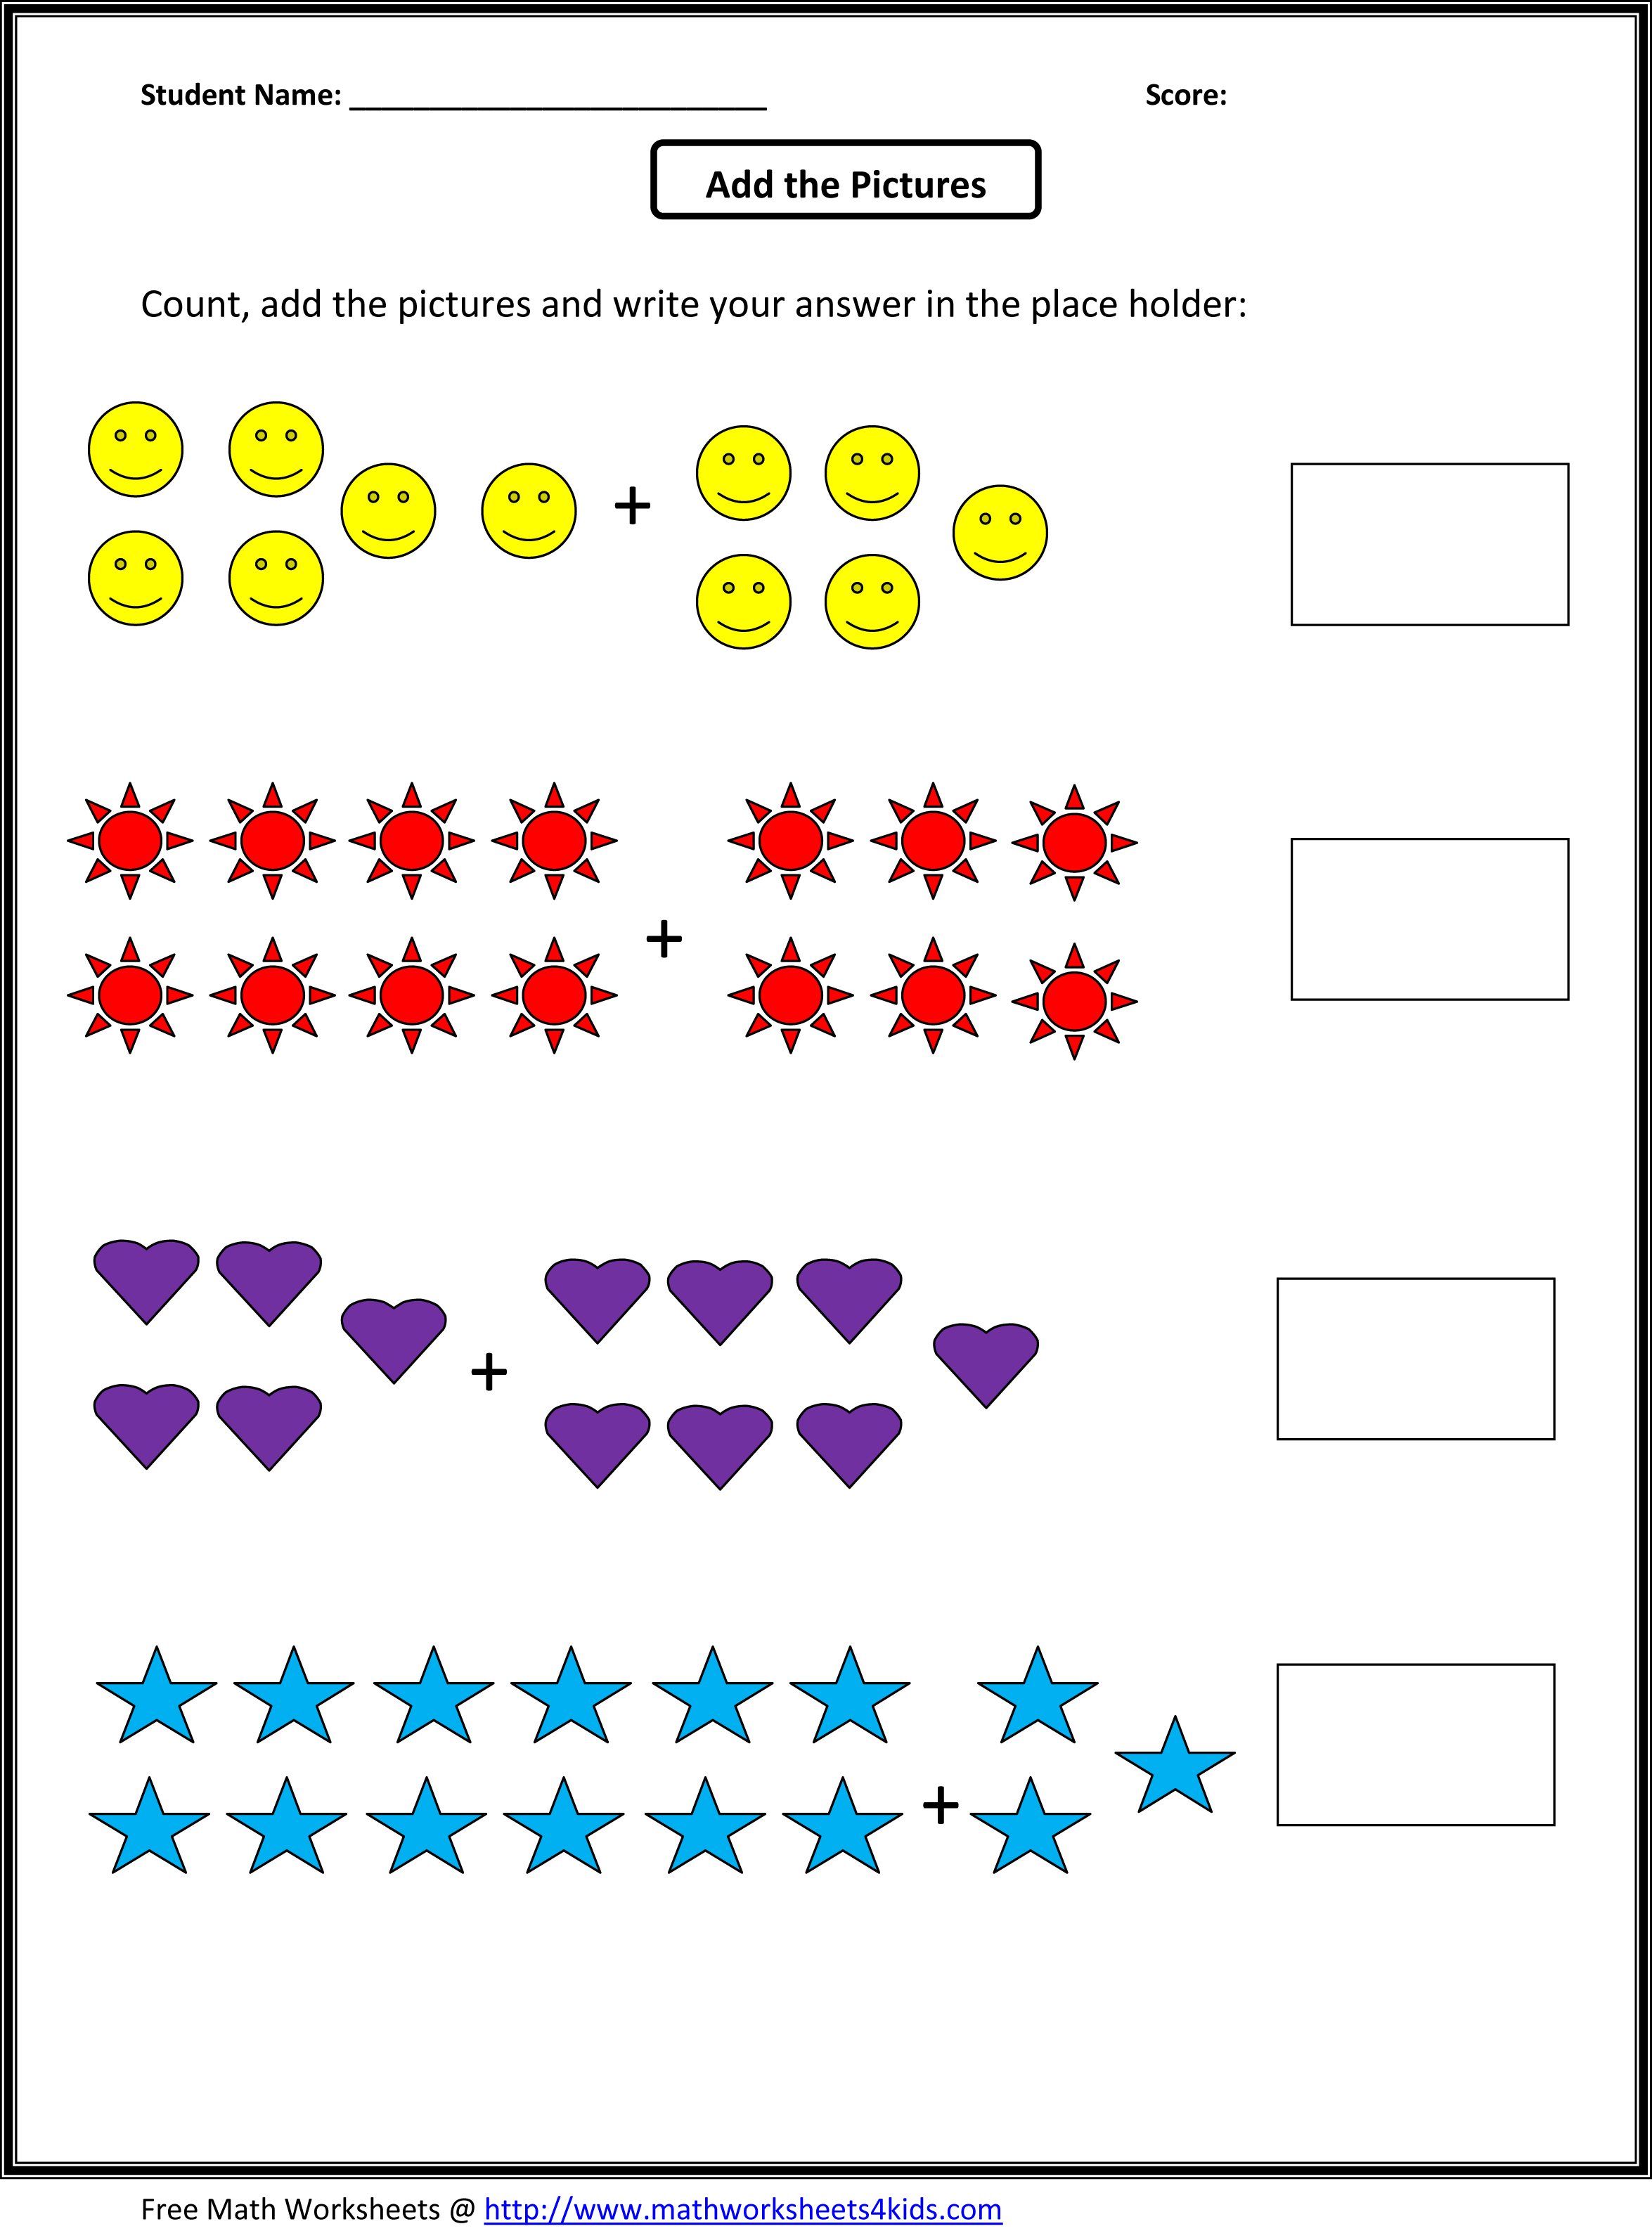 Proatmealus  Mesmerizing Grade  Maths Worksheet  Reocurent With Outstanding Math Worksheets For St Grade Free  Reocurent With Beautiful Long Term And Short Term Goals Worksheet Also First Amendment Worksheets In Addition Power And Exponents Worksheet And Frozen Worksheet As Well As Free Printable Letter Recognition Worksheets Additionally History Printable Worksheets From Reocurentcom With Proatmealus  Outstanding Grade  Maths Worksheet  Reocurent With Beautiful Math Worksheets For St Grade Free  Reocurent And Mesmerizing Long Term And Short Term Goals Worksheet Also First Amendment Worksheets In Addition Power And Exponents Worksheet From Reocurentcom